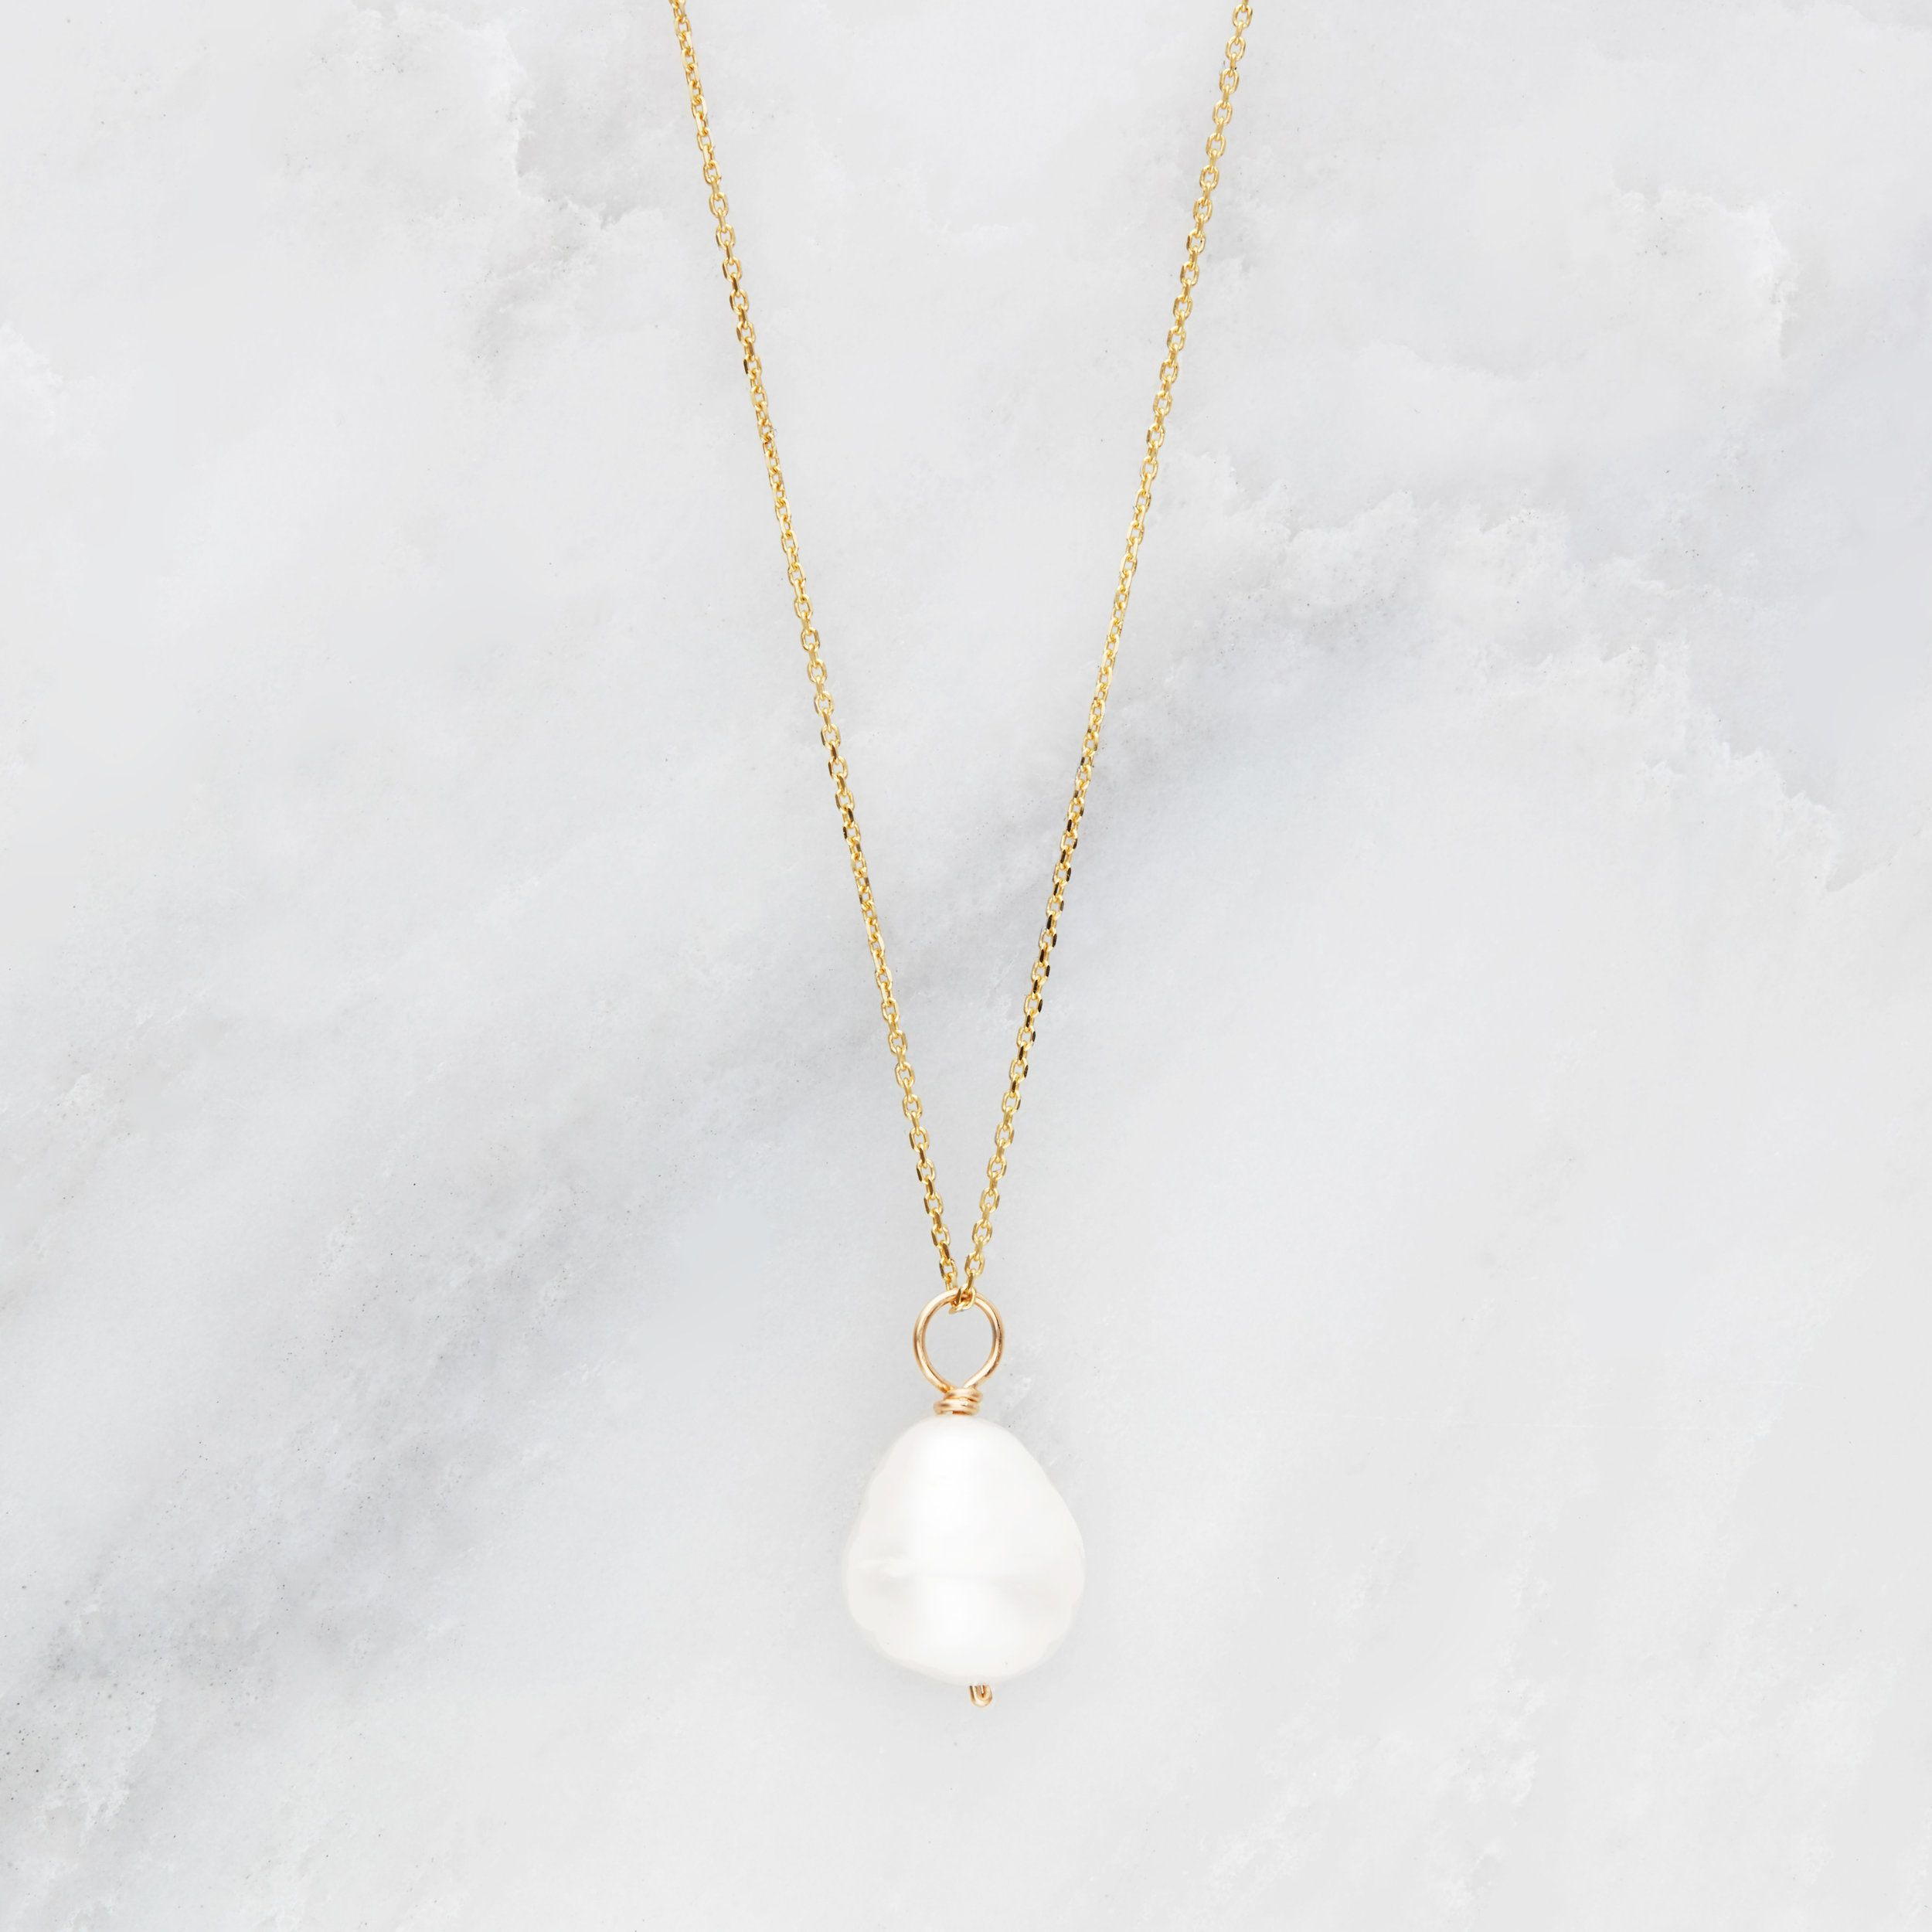 in ct sapphire single garland gold necklace and pendant itm white pearl freshwater